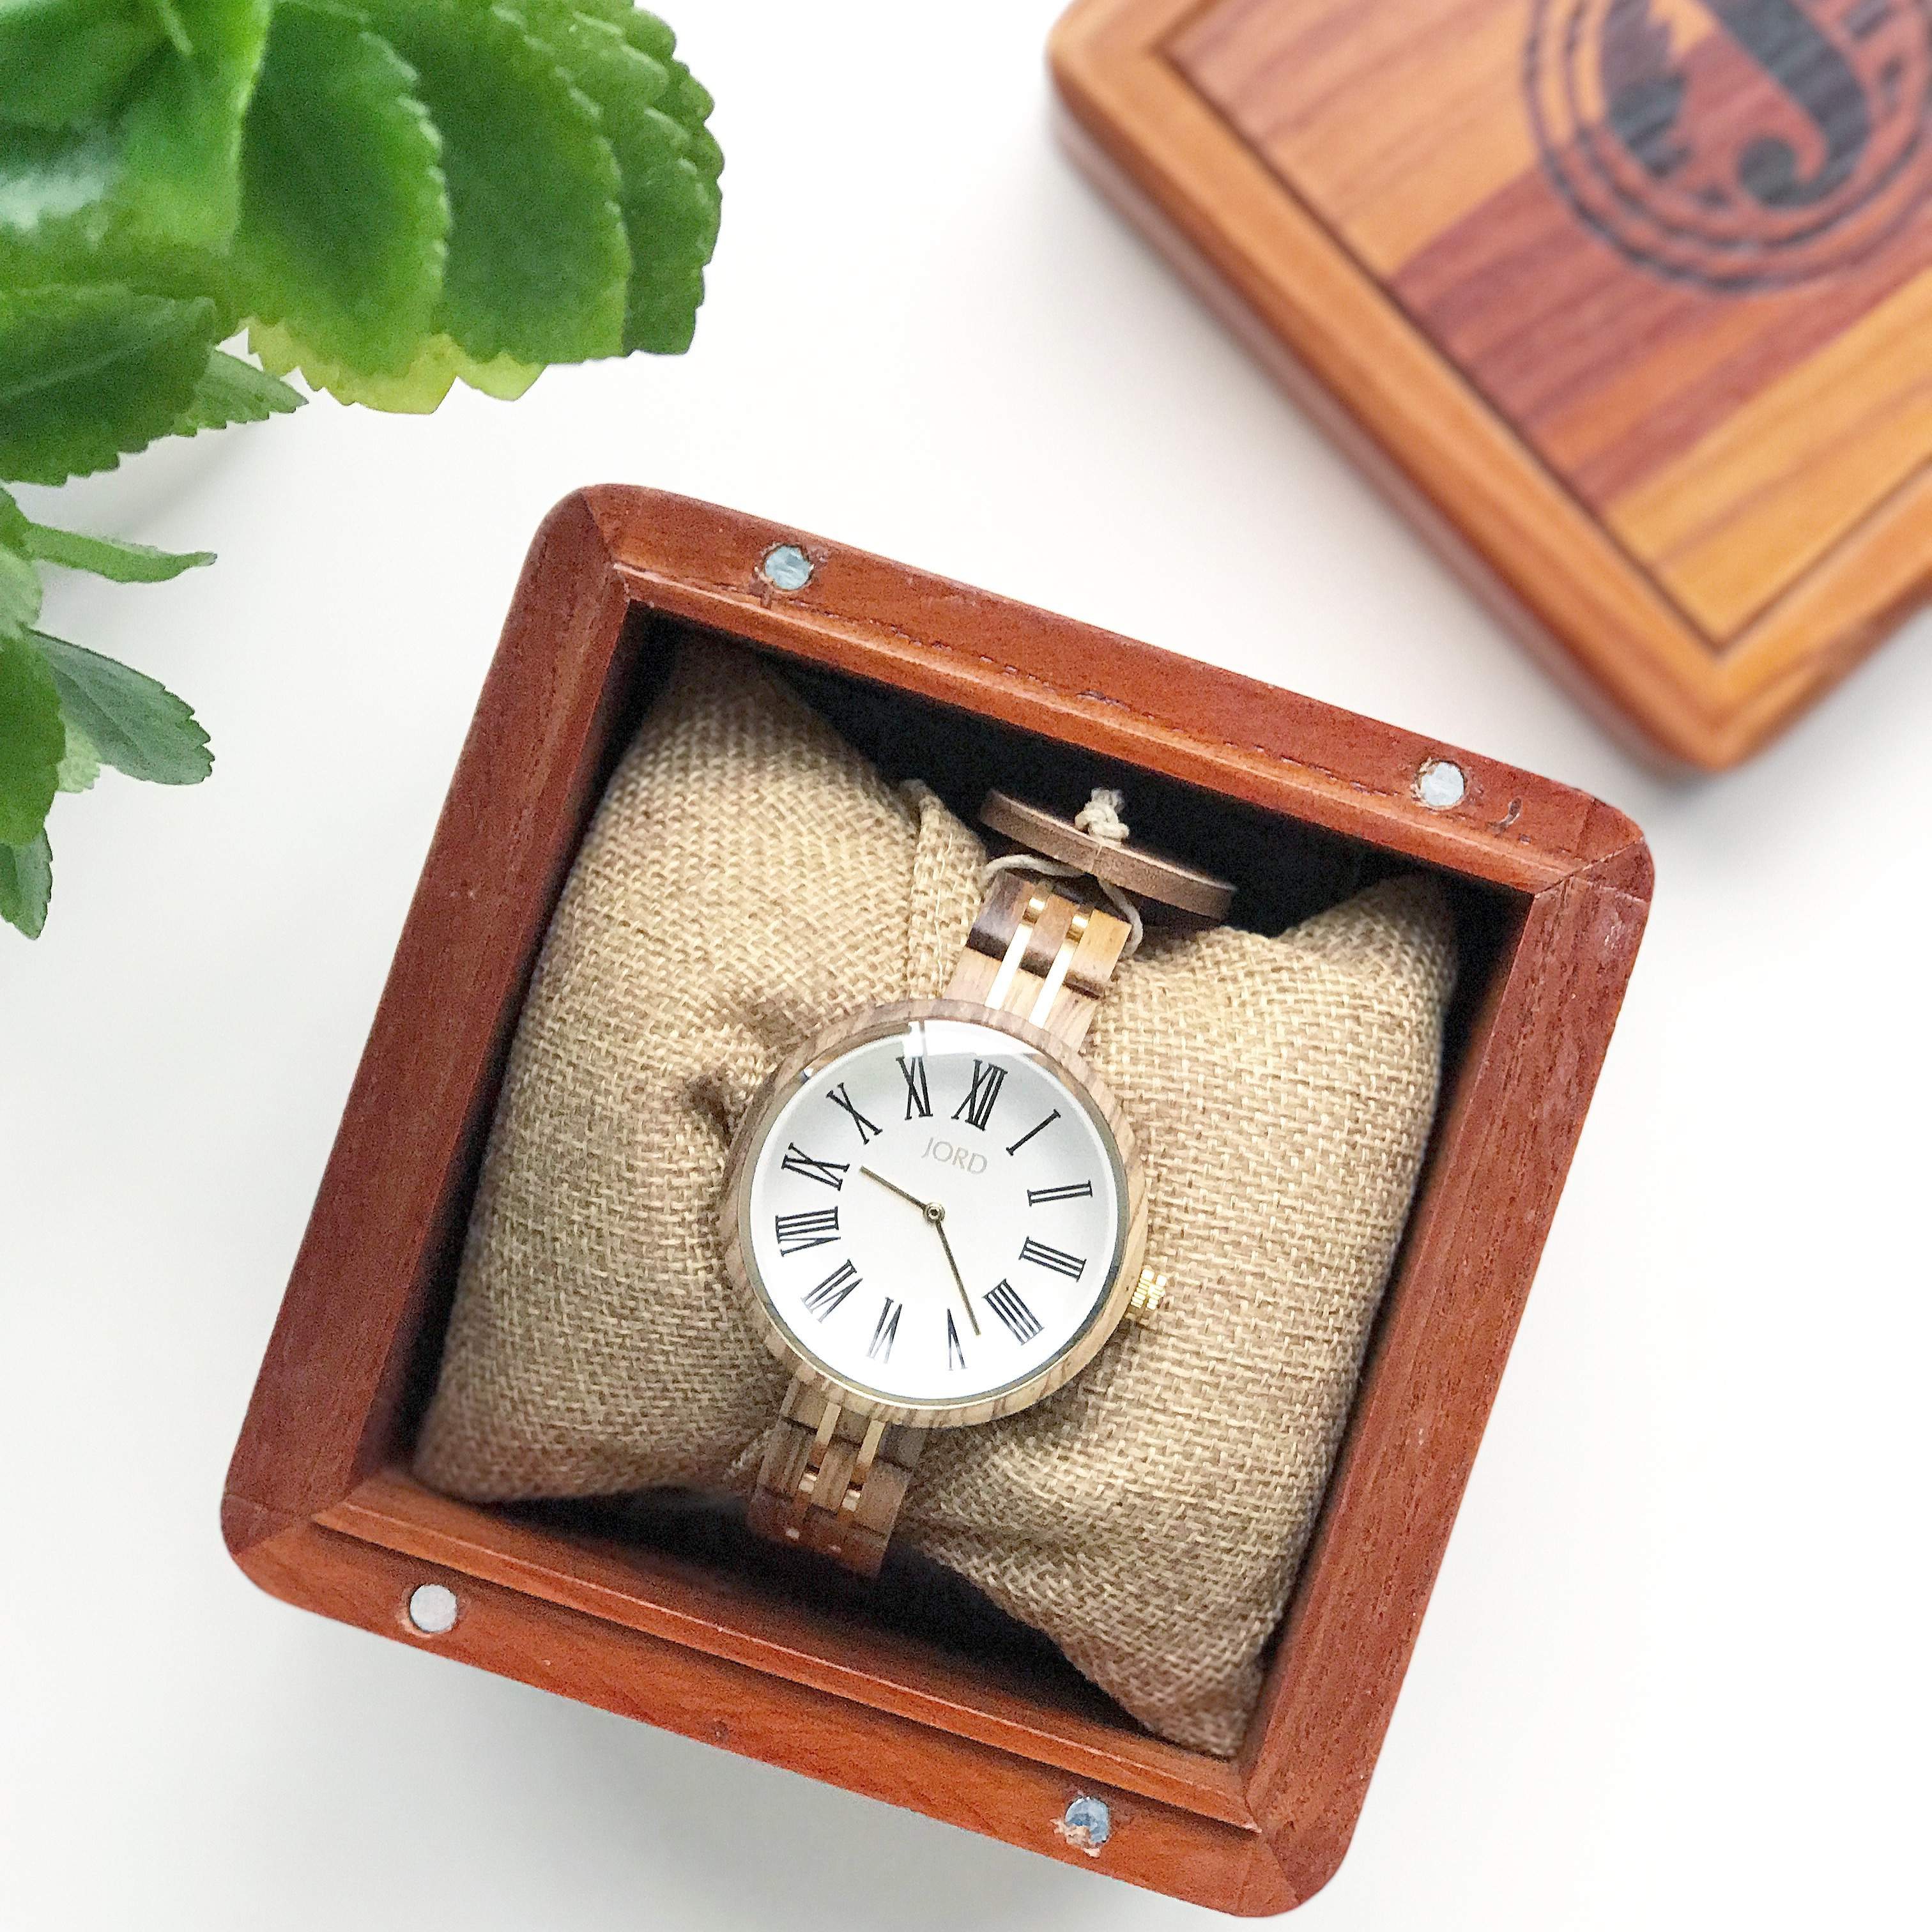 A UNIQUE WOODEN WATCH FOR HIM OR HER